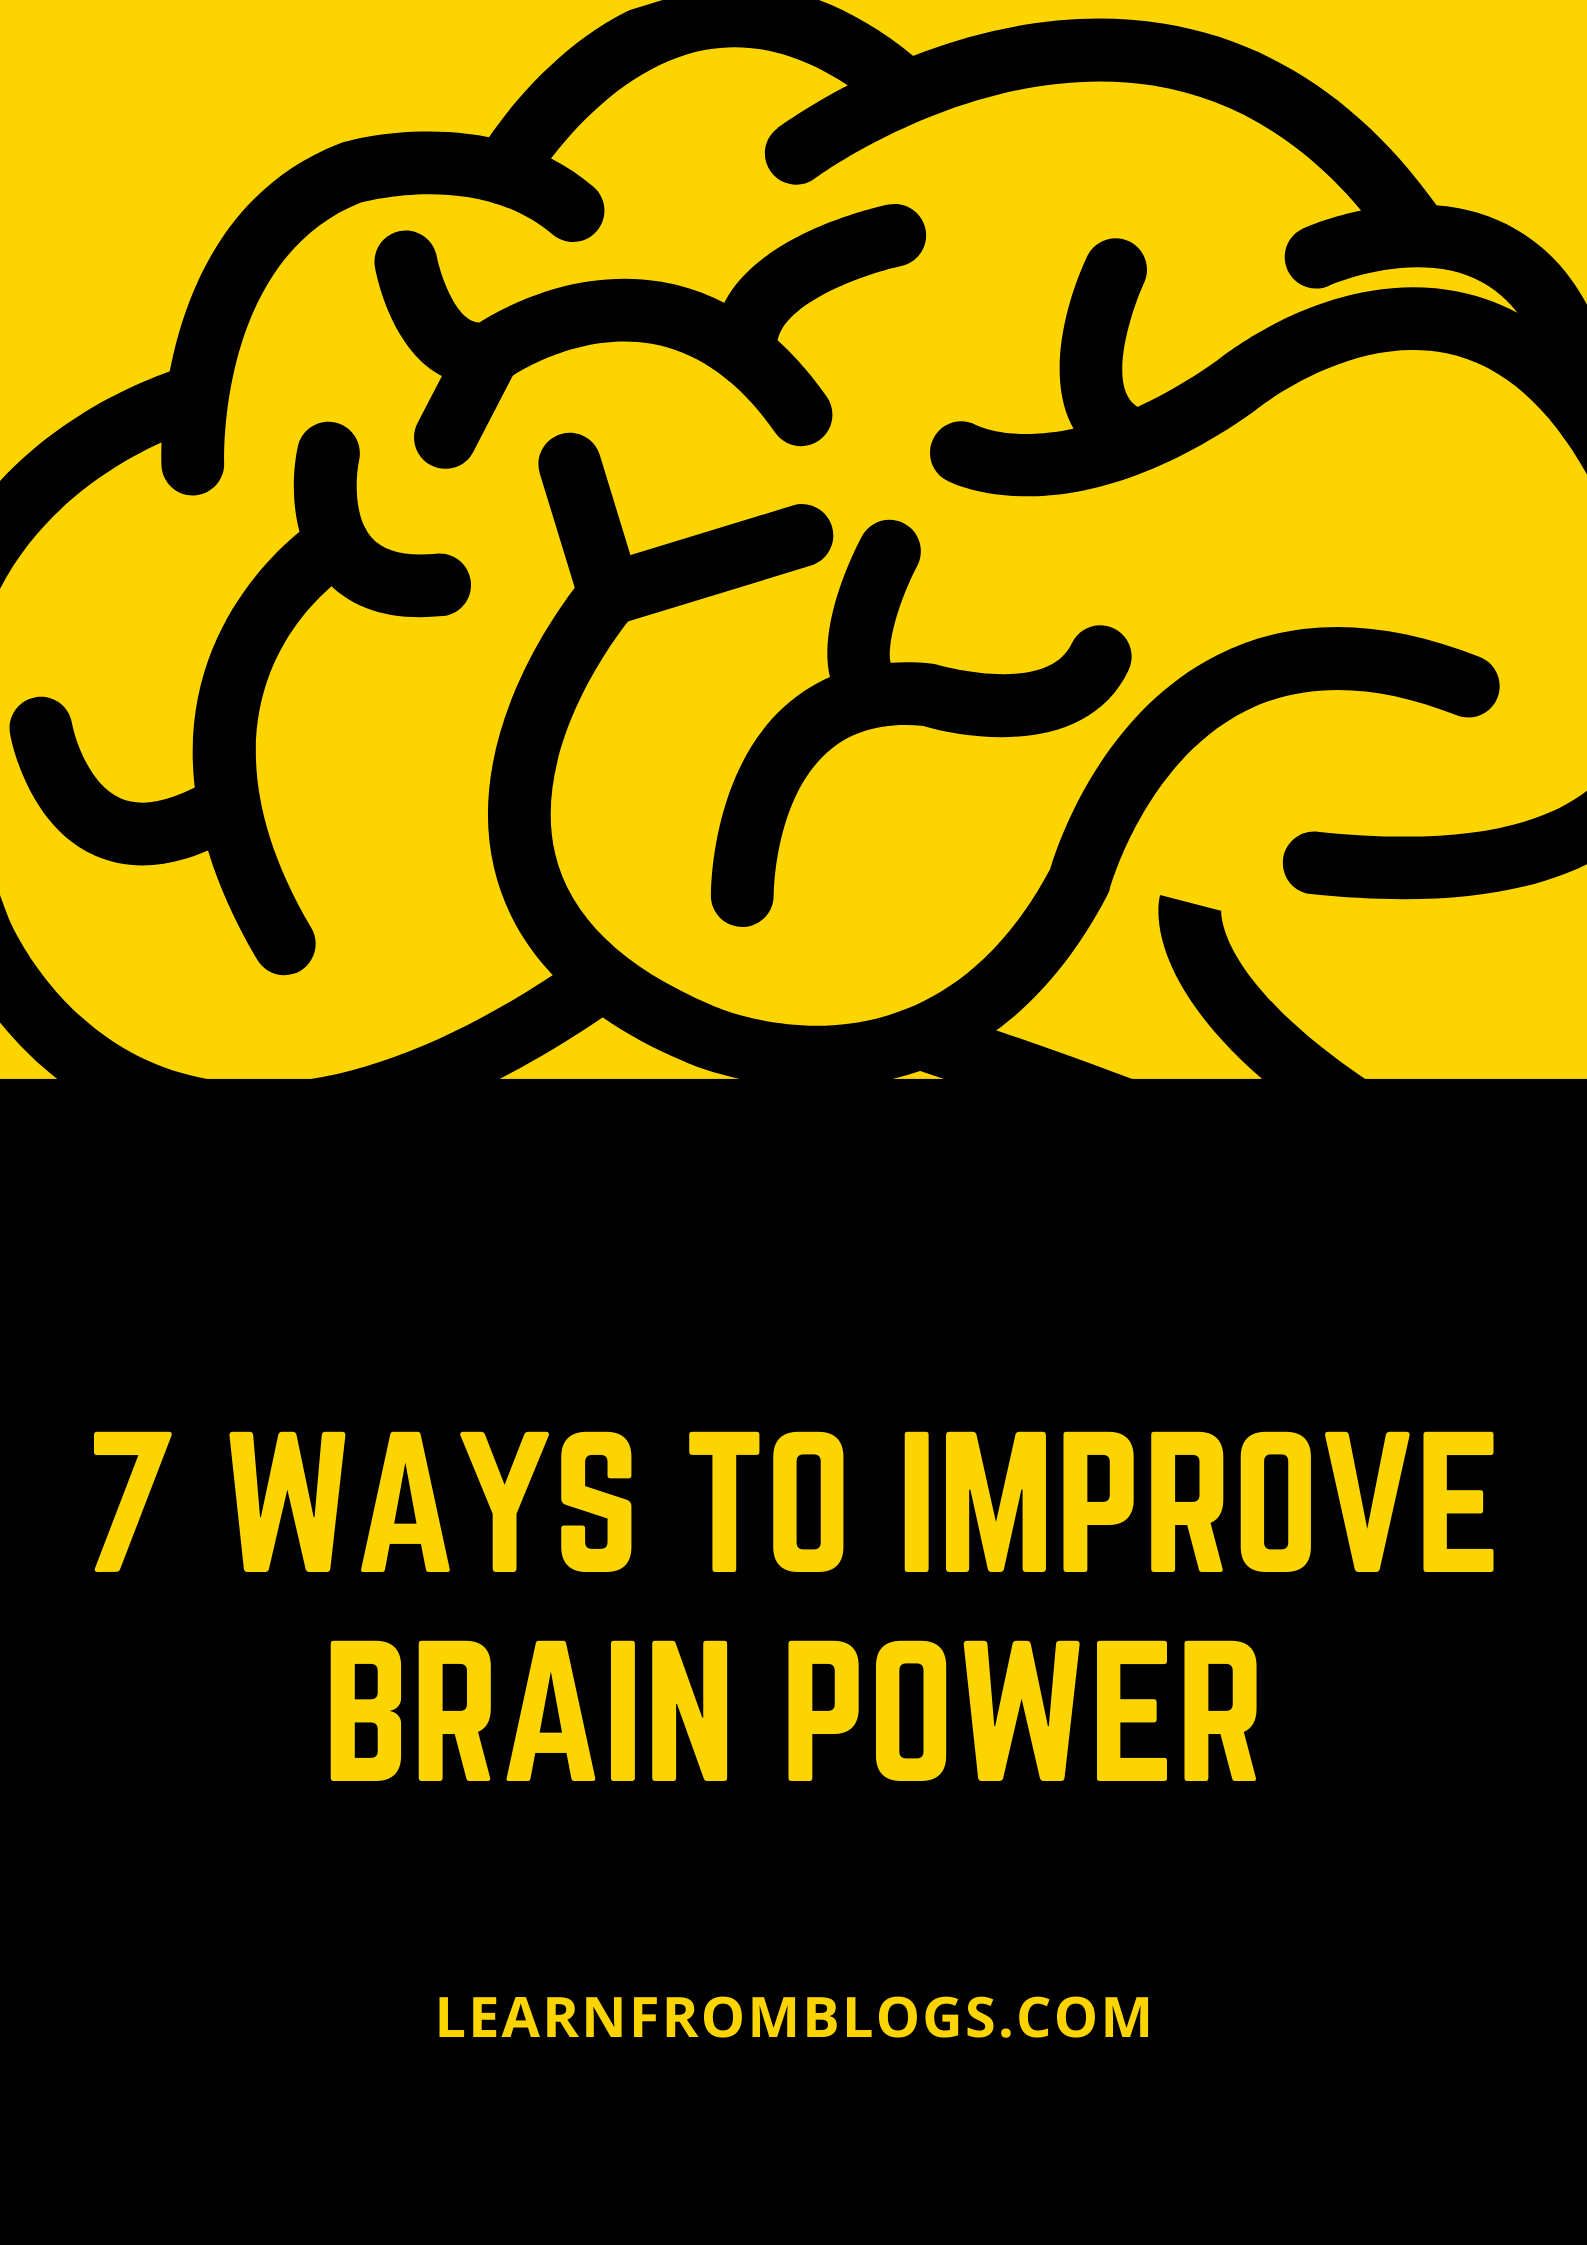 7 Ways To Improve Brain Power.png